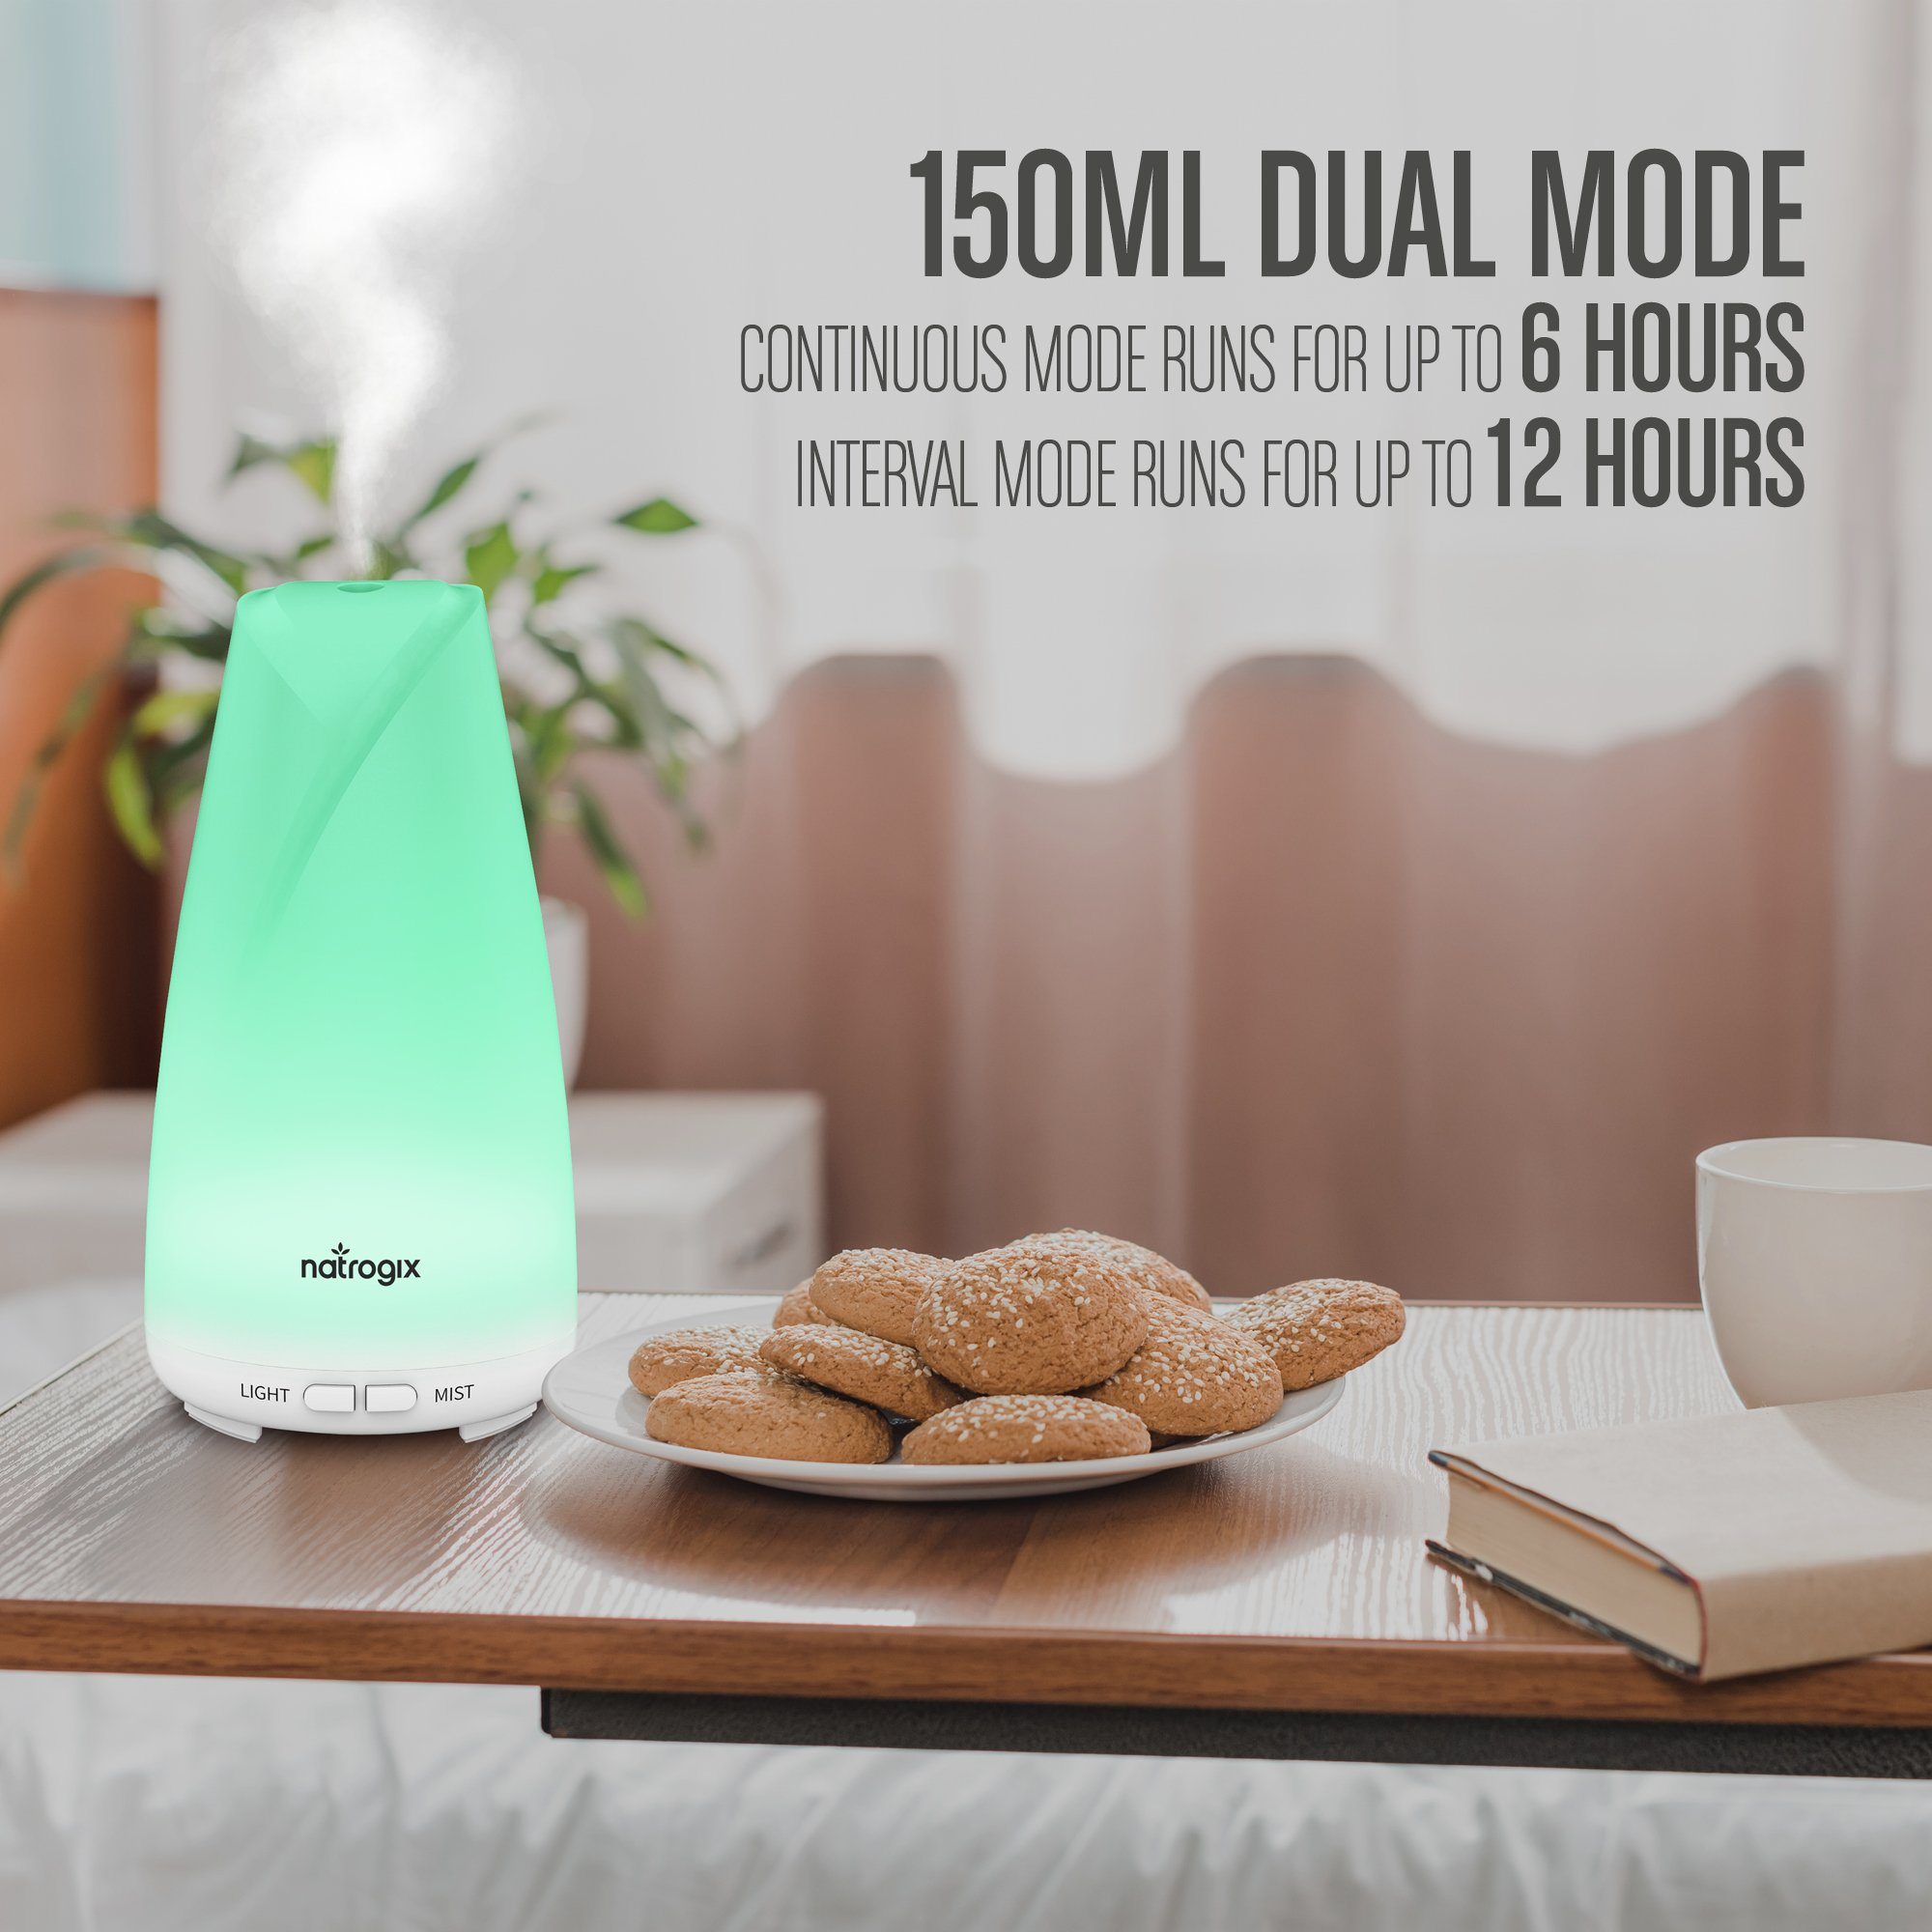 Essential Oil Diffuser 150ml by Natrogix Totem - Cool Mist Aroma Humidifier for Aromatherapy 7 Colors with Changing Colored LED Lights, Waterless Auto Shut-off and Adjustable Mist Mode w/ Free E-Book by Natrogix (Image #4)